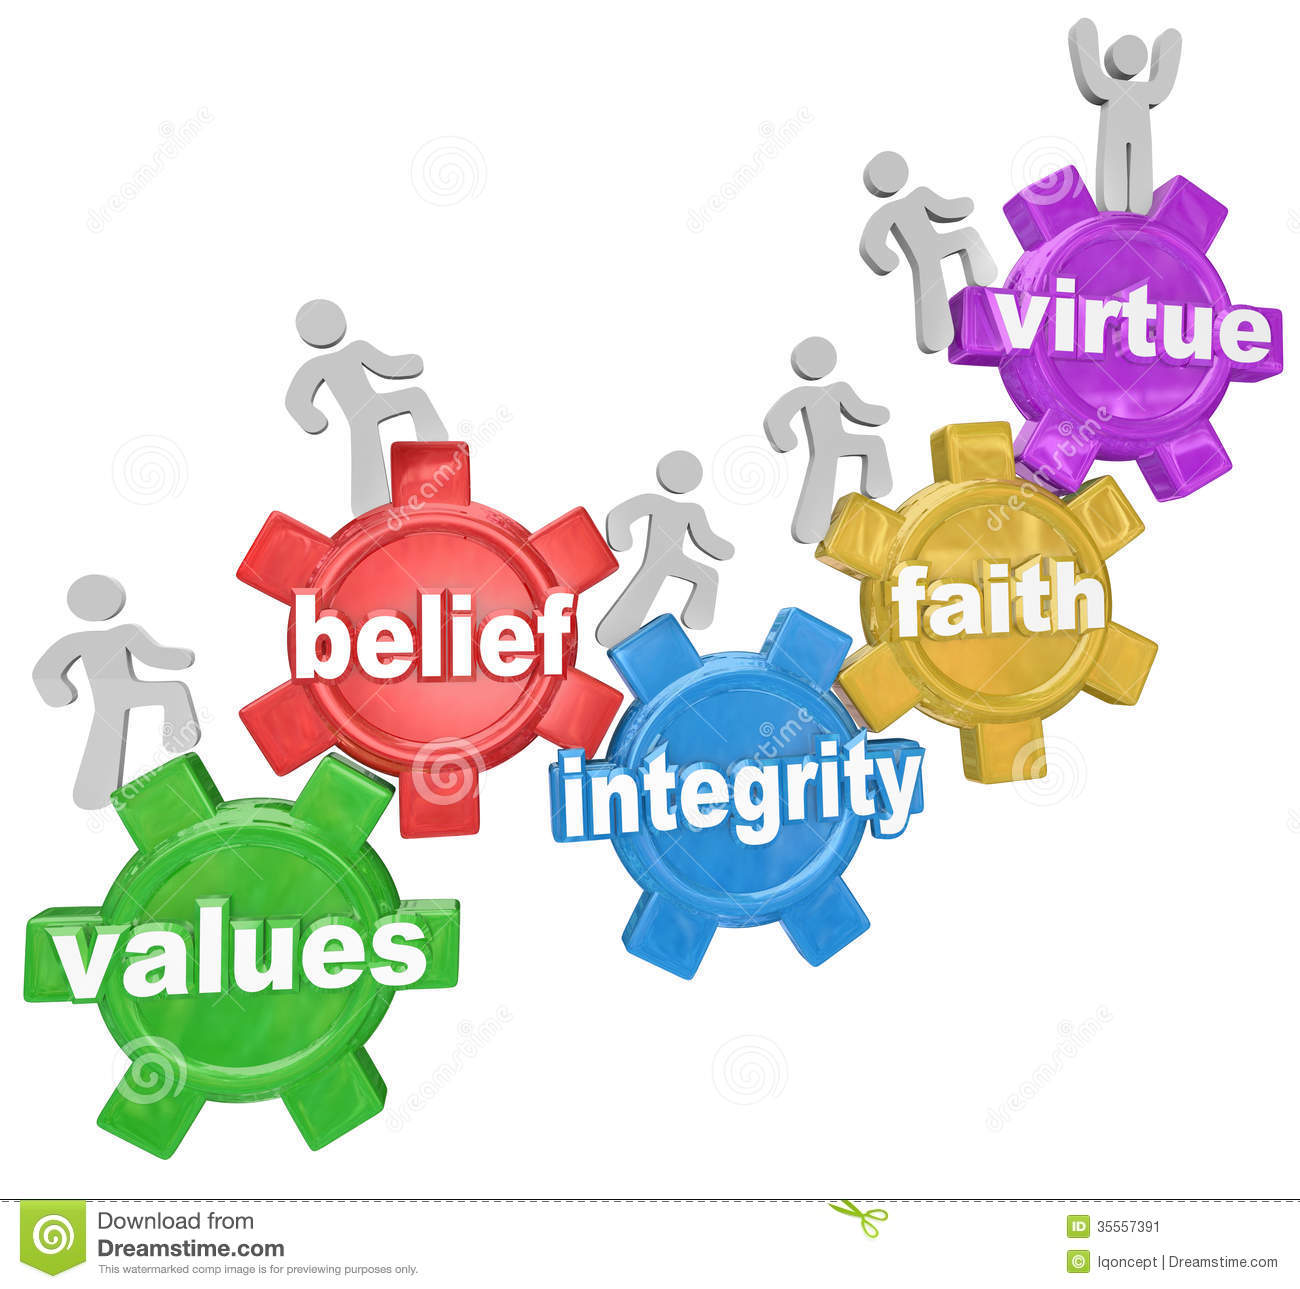 Integrity Clip Art Free Clipart Panda Free Clipart Images